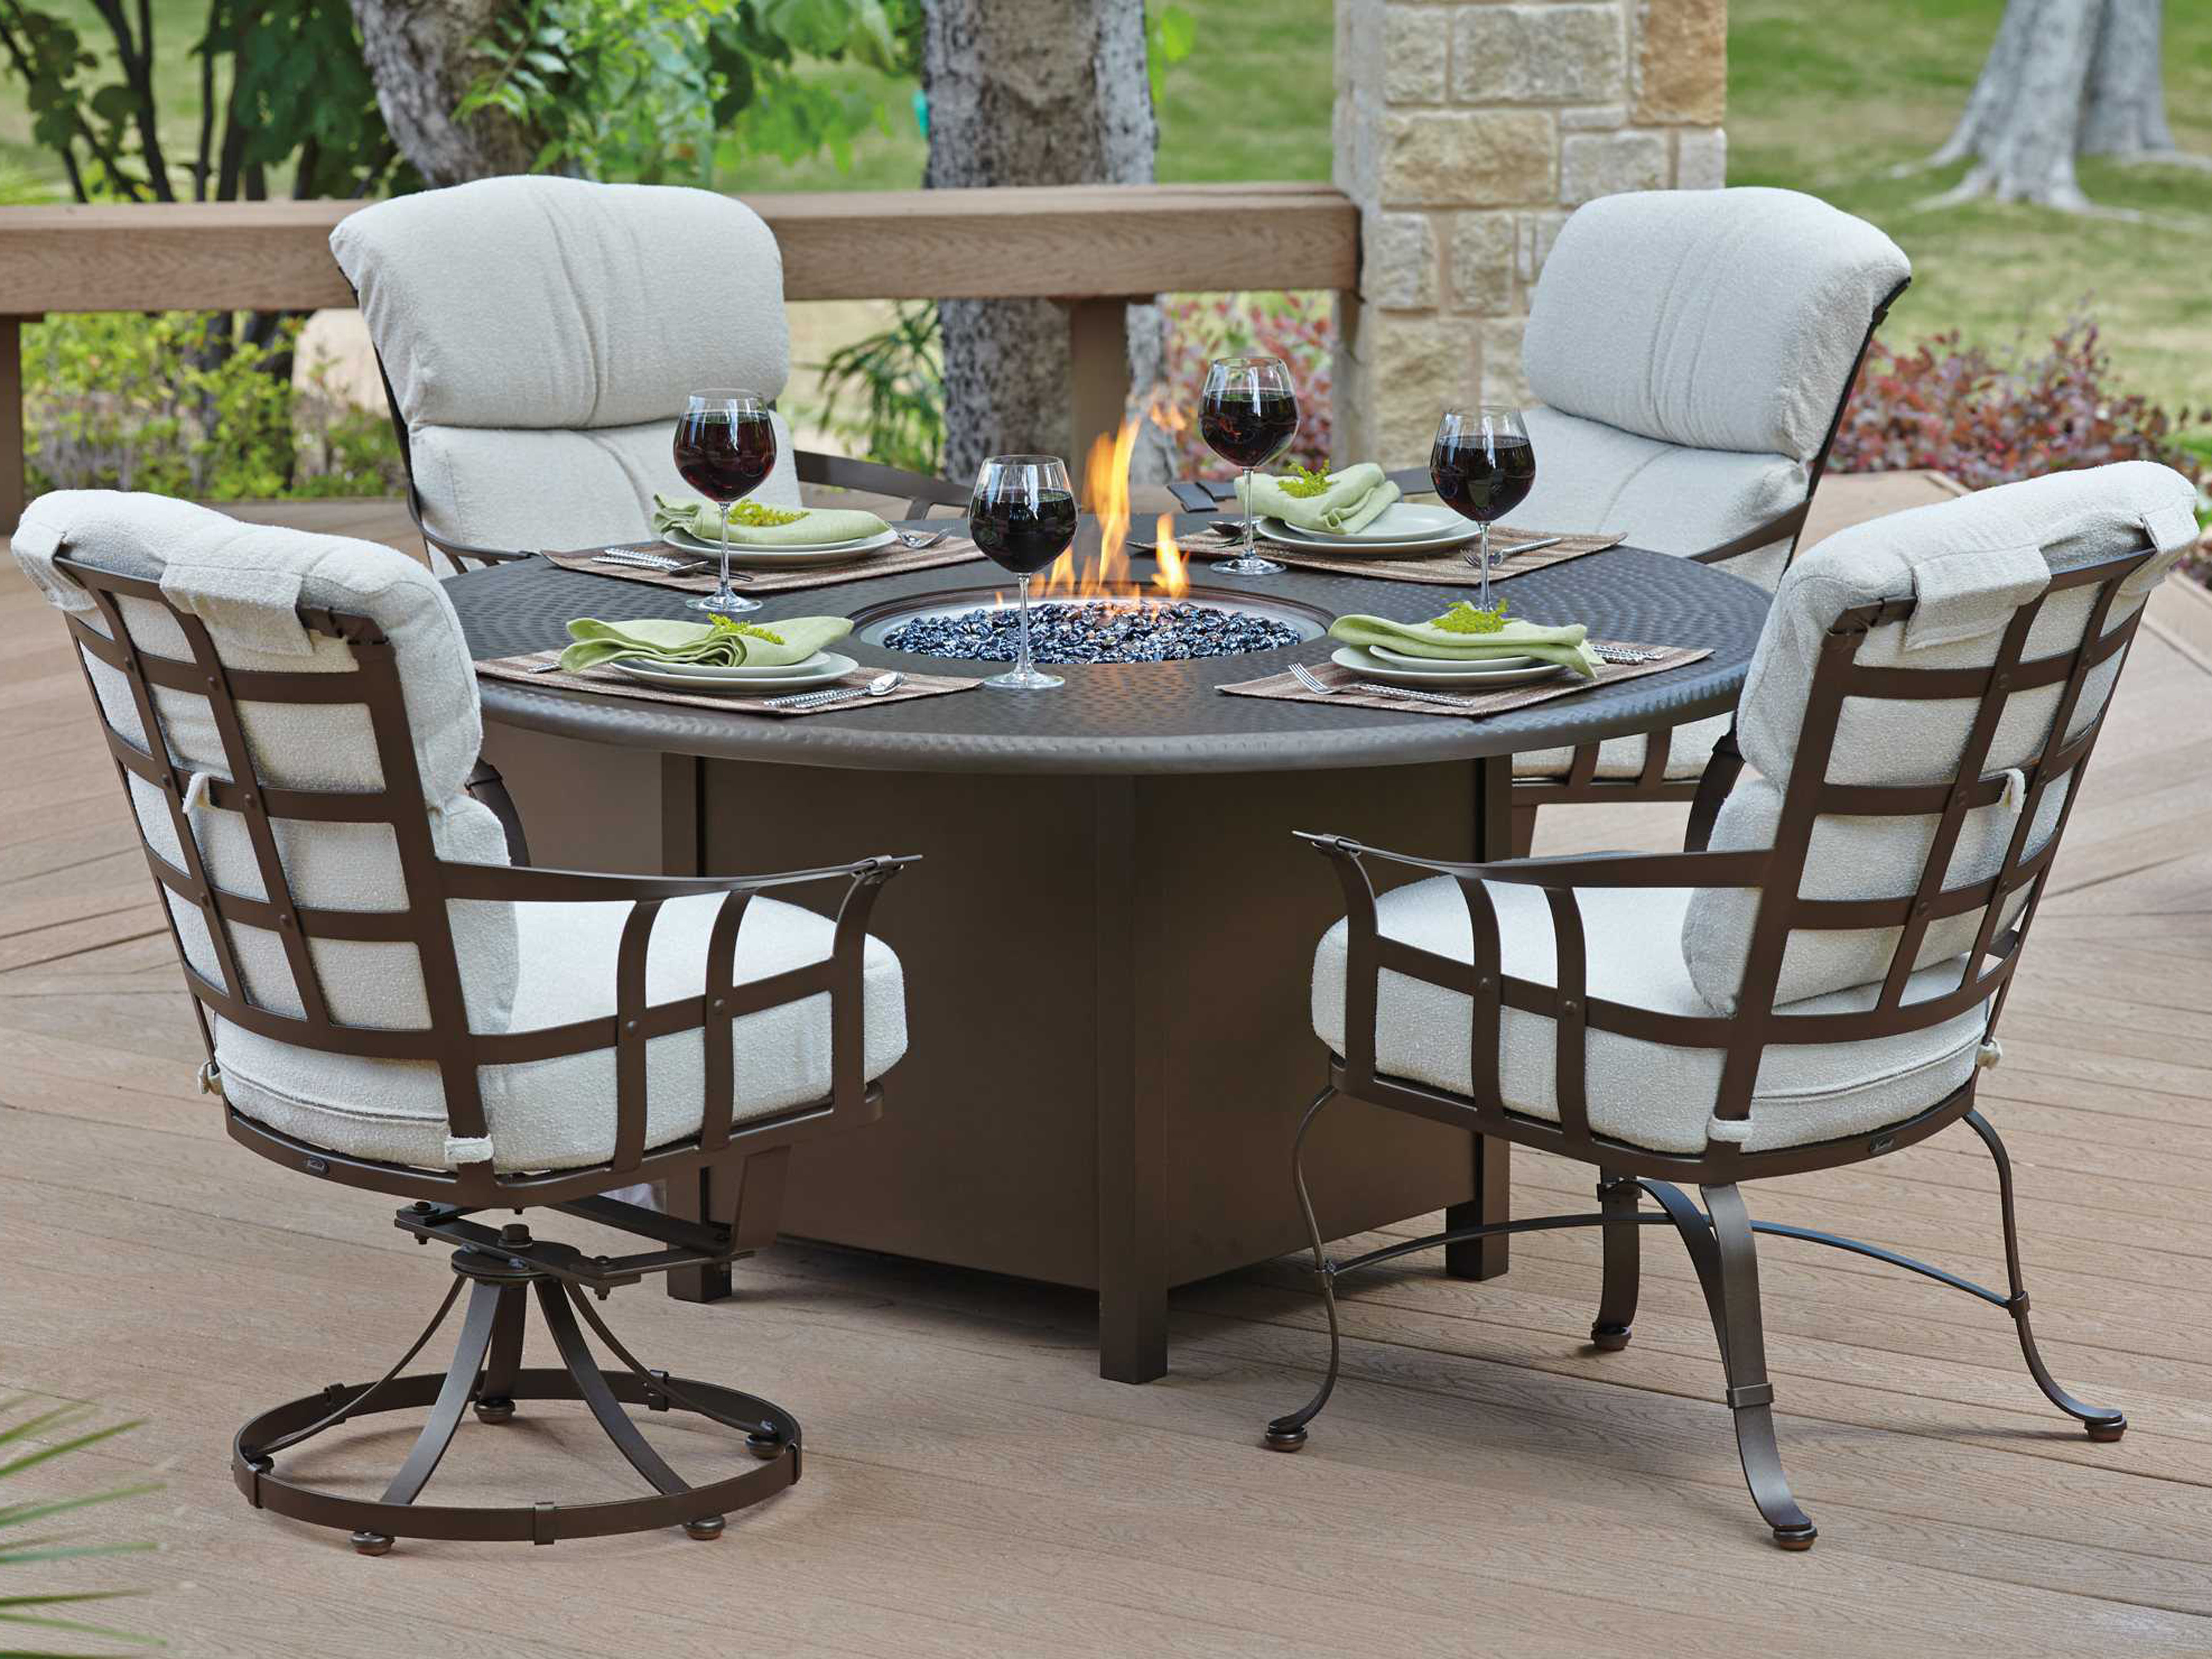 Woodard Cast Aluminum Hammered 48 Round Fire Pit Top With